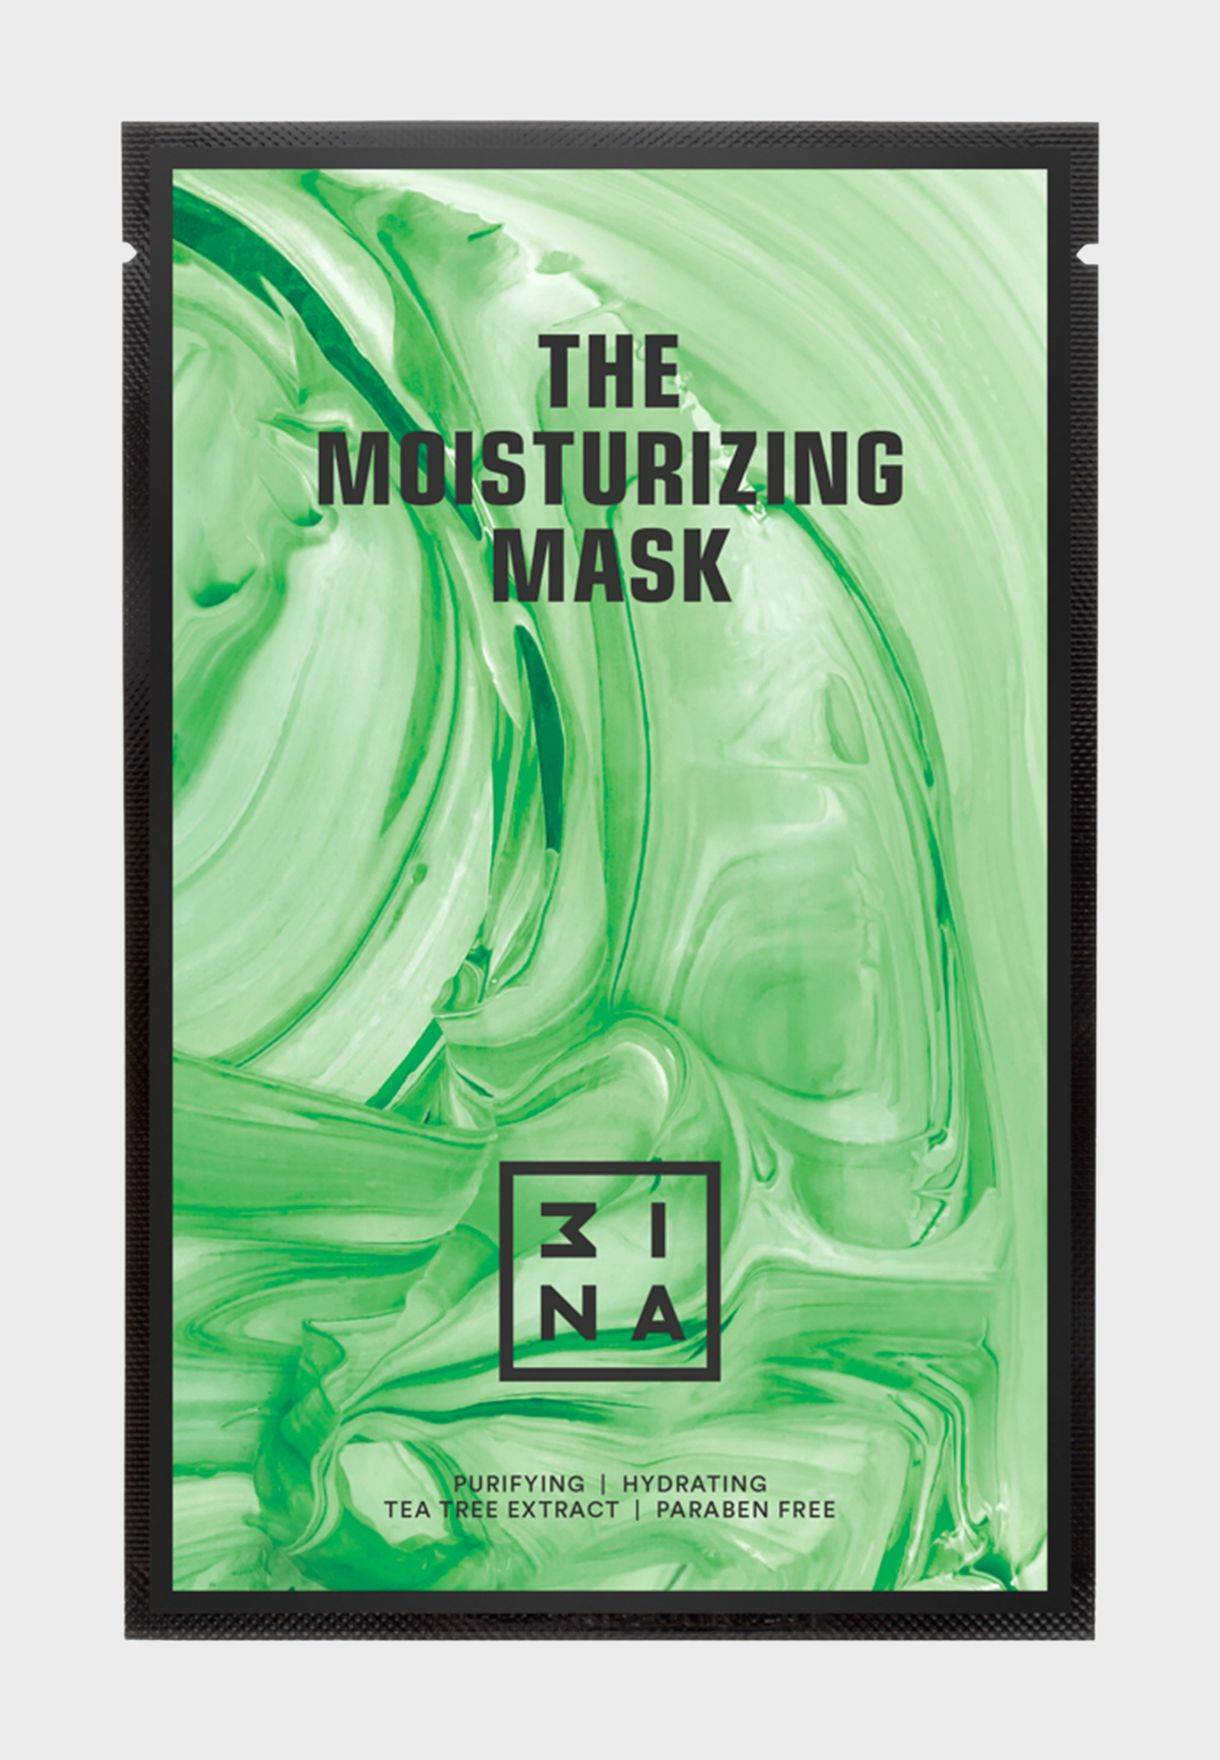 The Moisturizing Mask